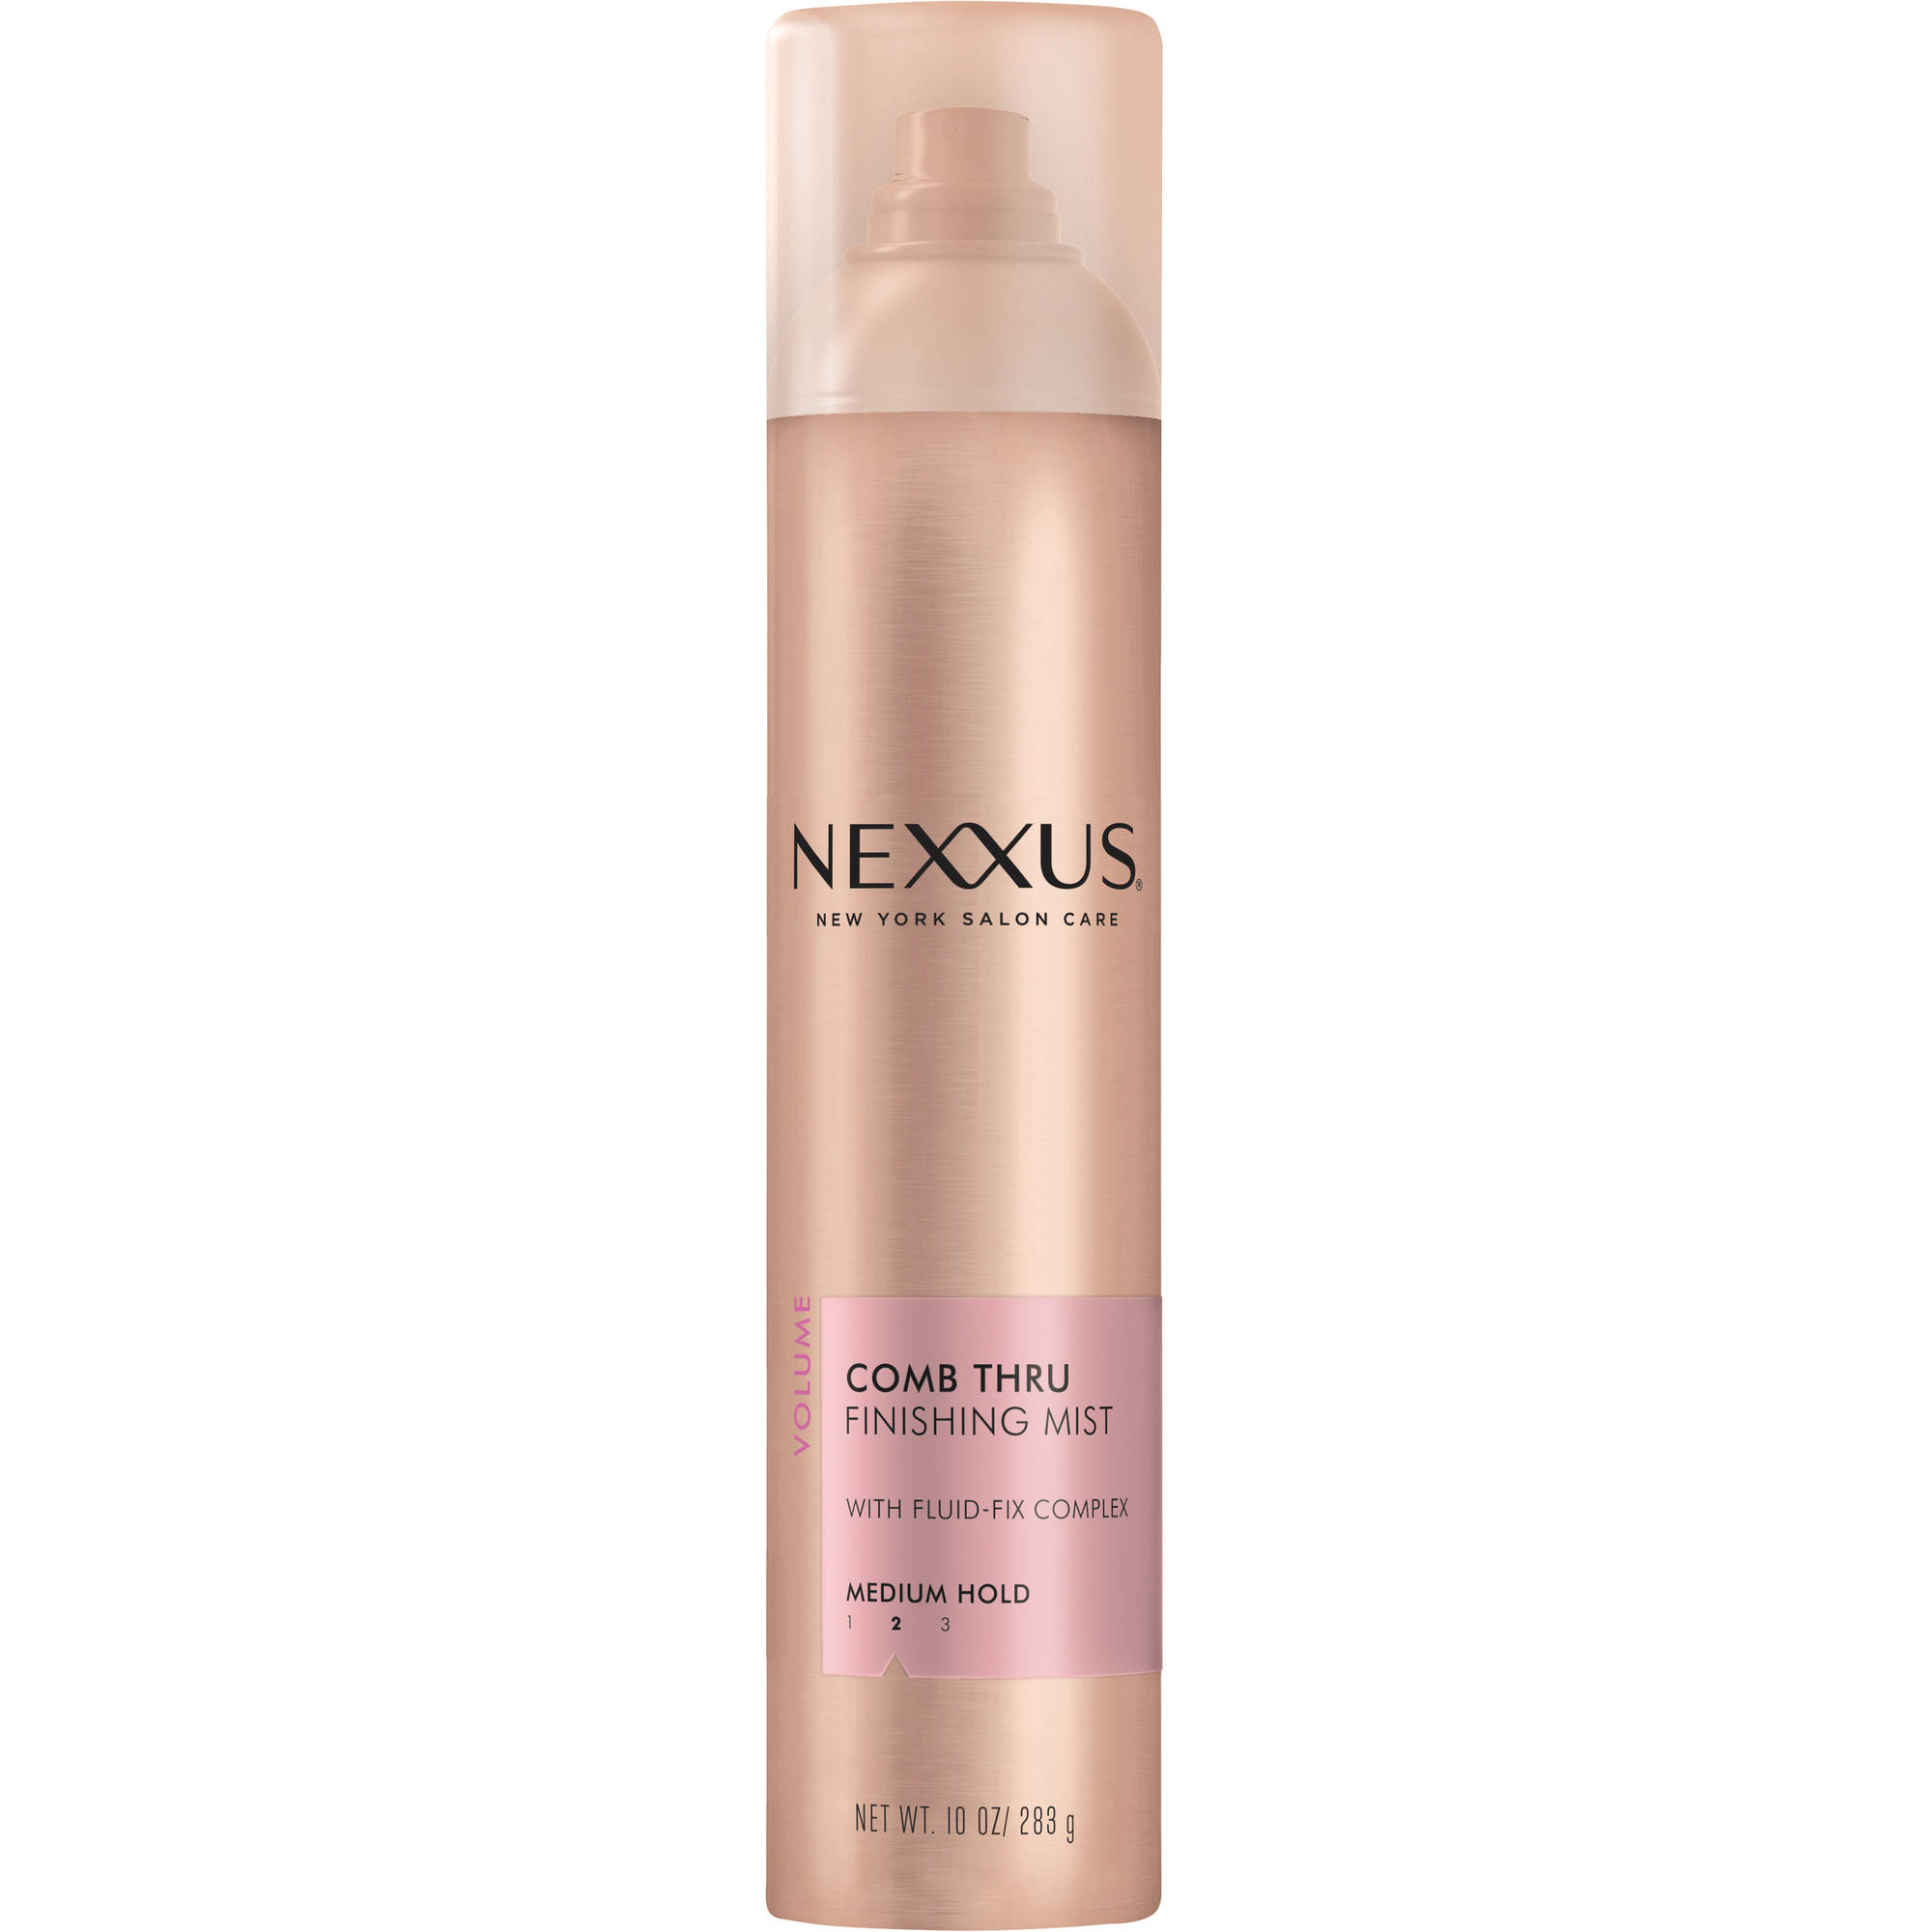 Nexxus Comb Thru Finishing Mist, for Volume 10 Oz